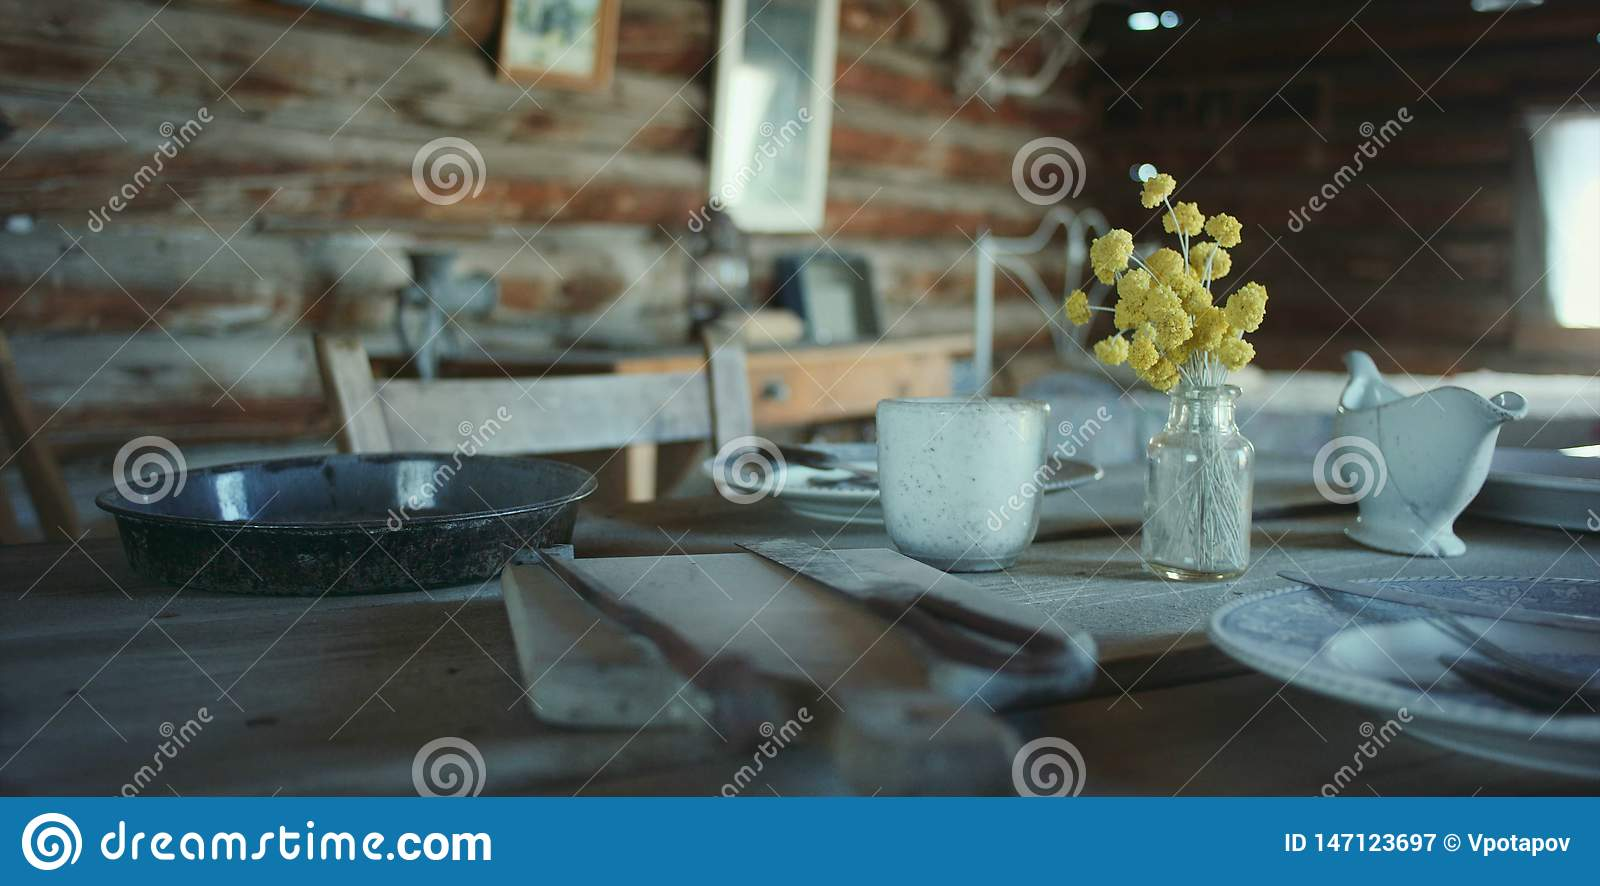 Old rustic table with dishes and utensils